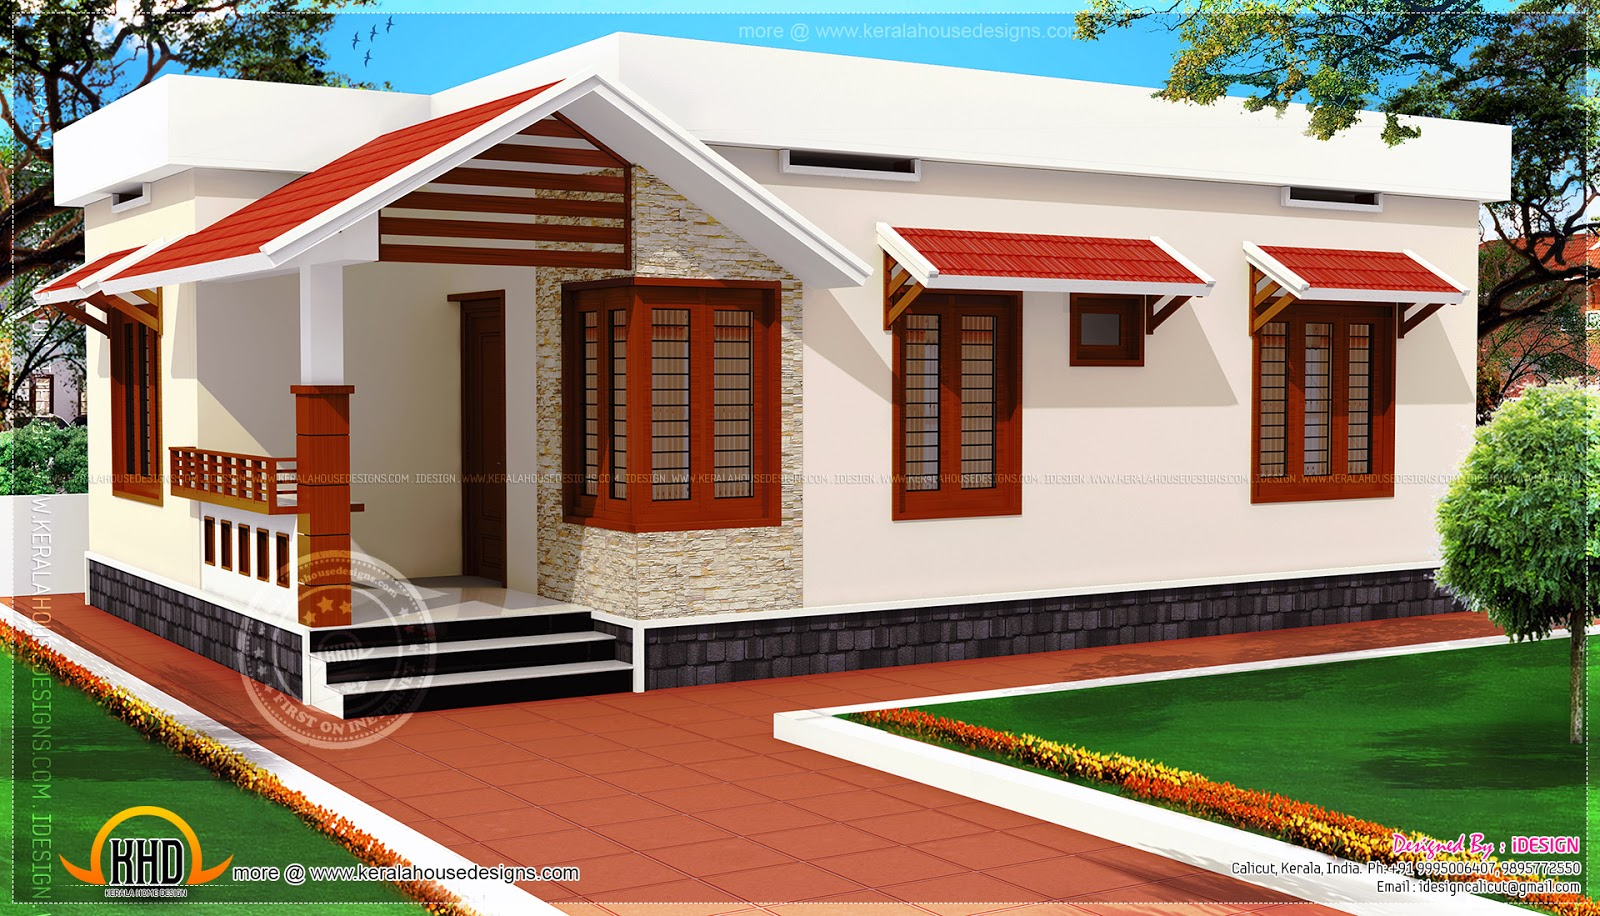 Low cost kerala home design in 730 square feet kerala for Village home designs